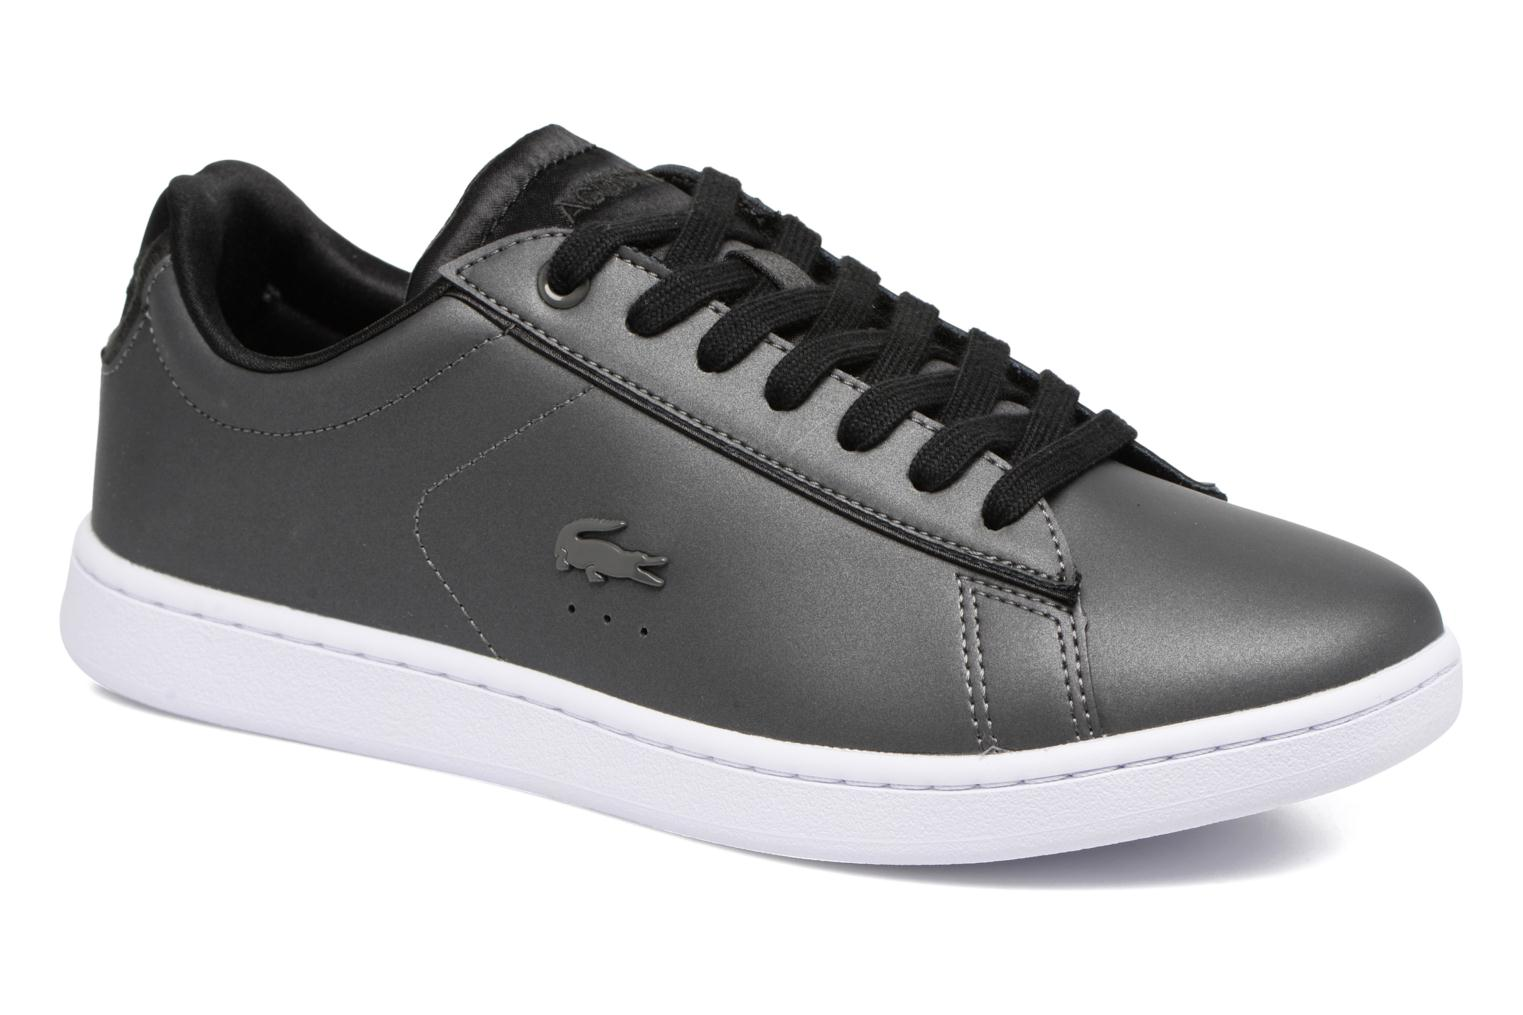 CARNABY EVO 118 7 by Lacoste